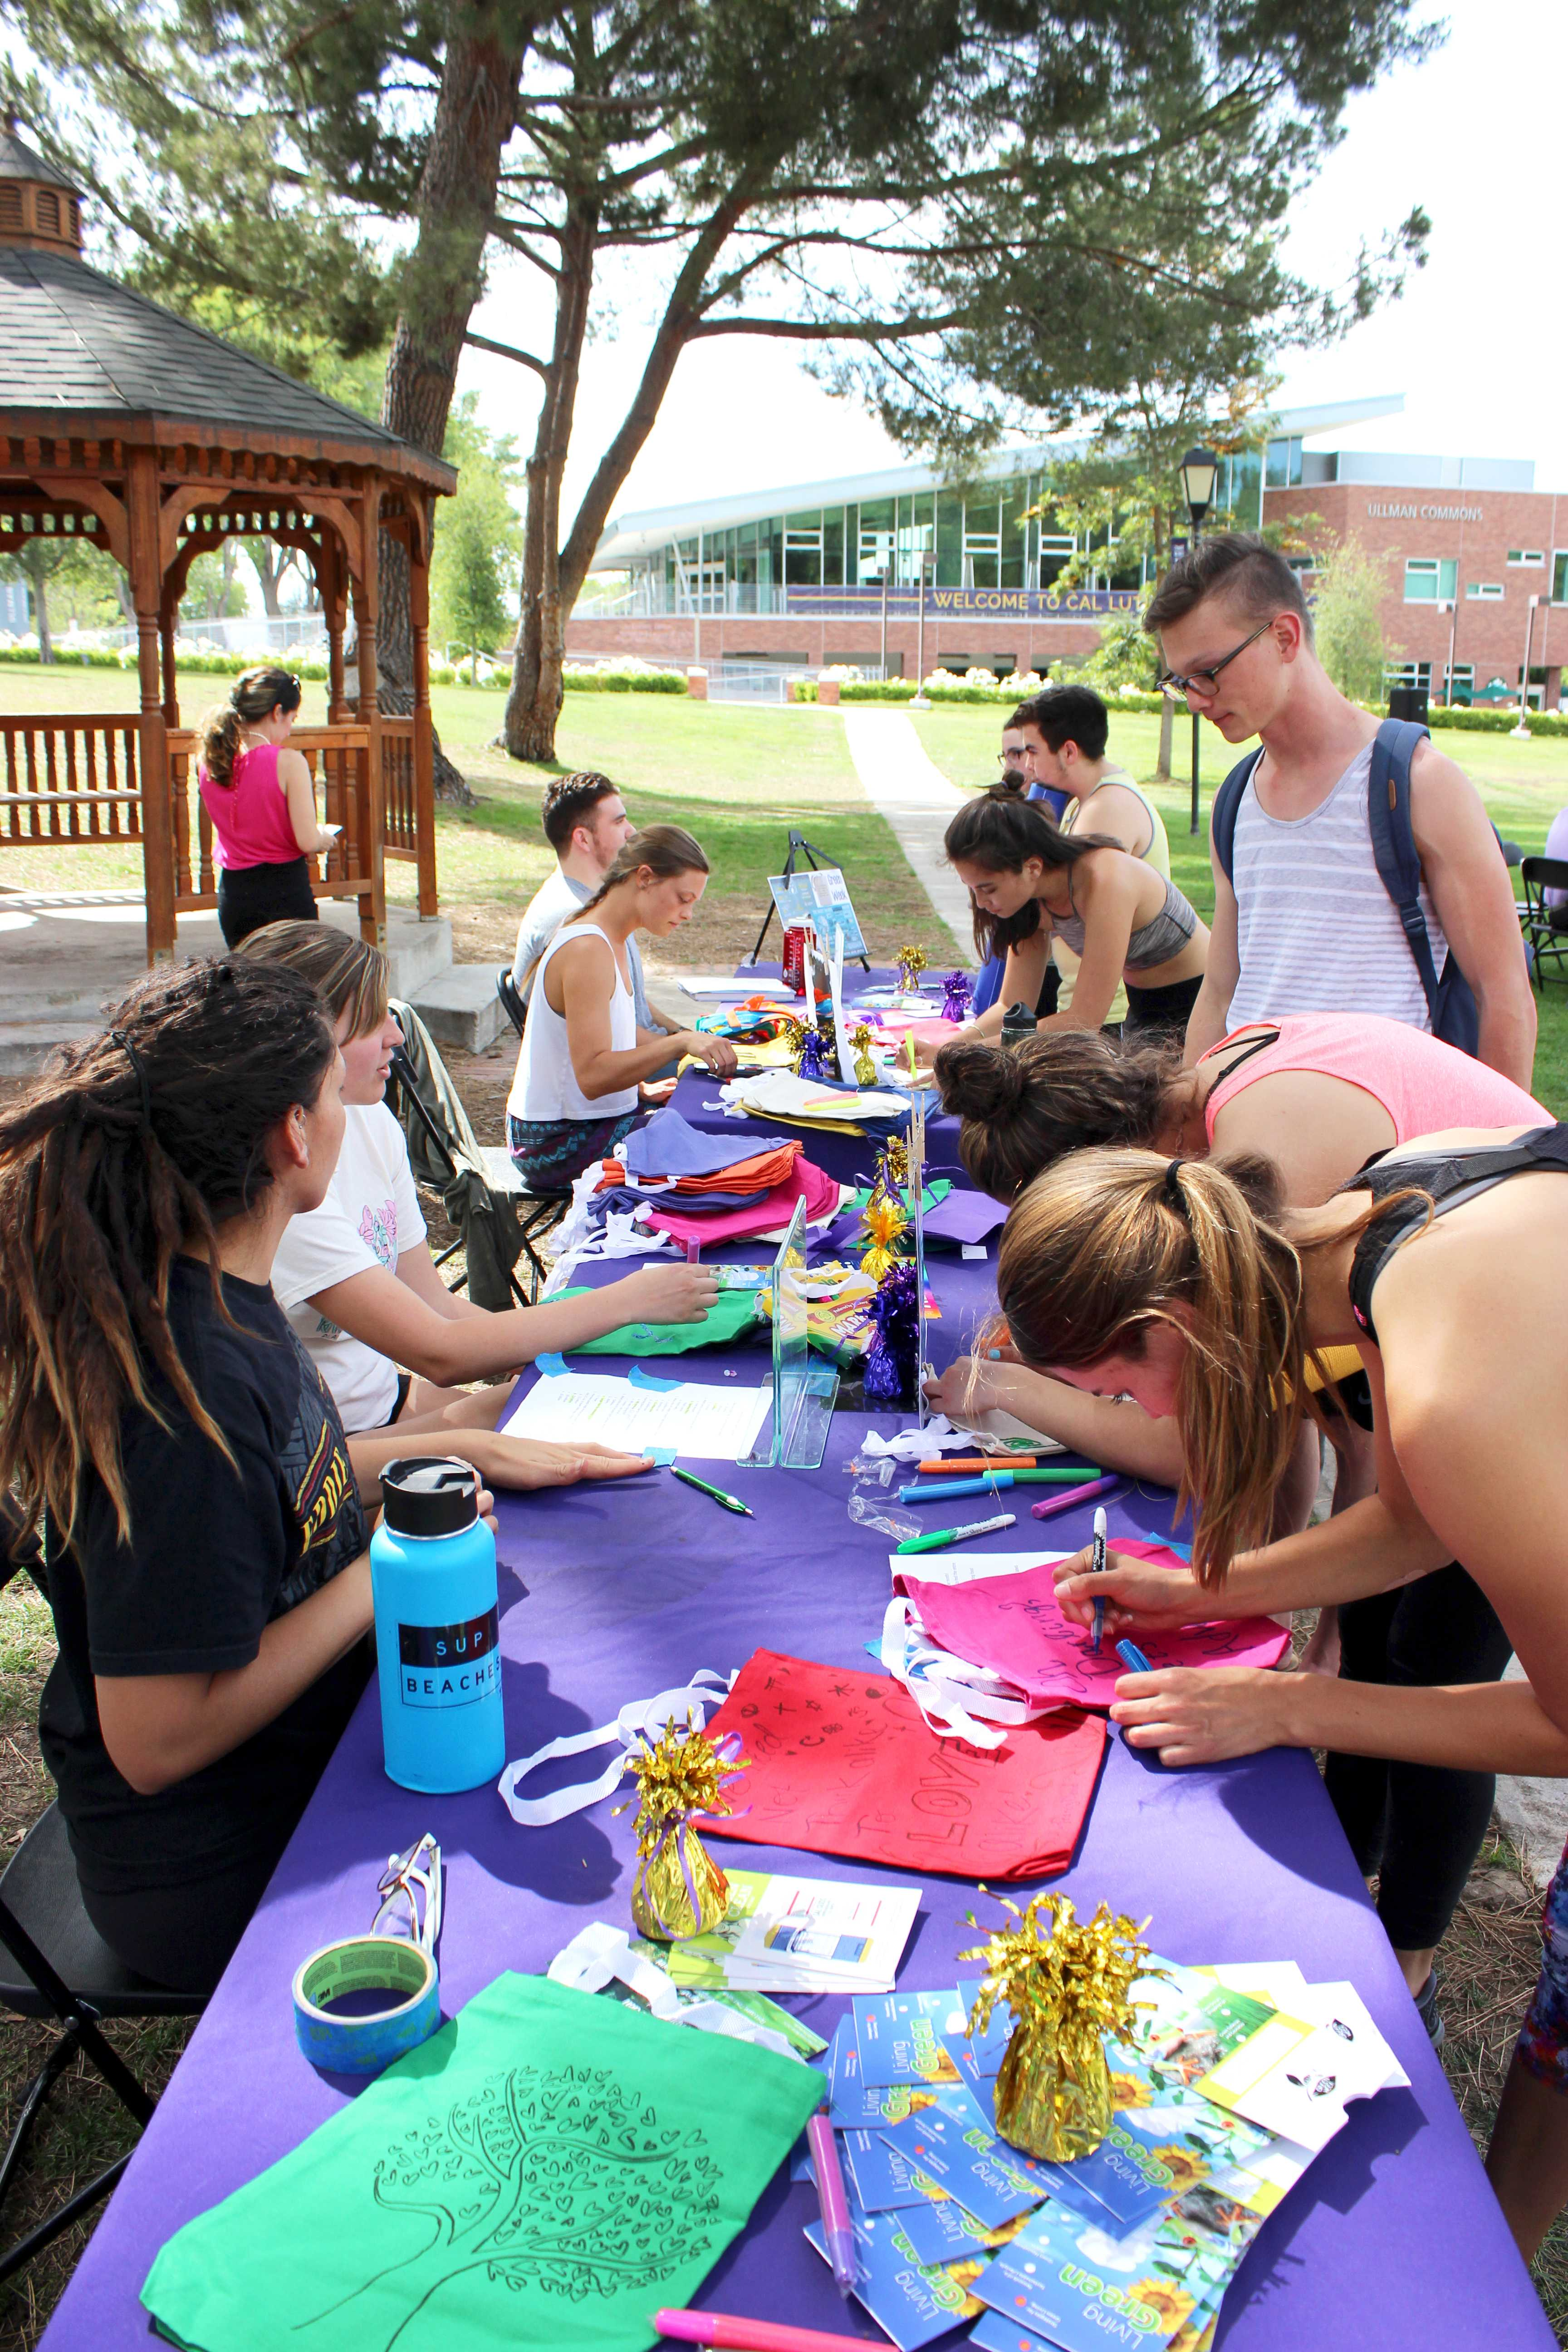 As part of Green Week on Cal Lutheran's campus, students participated by decorating their own reusable canvas bags after yoga in the park. Photo by Amanda Marston - Staff Photographer